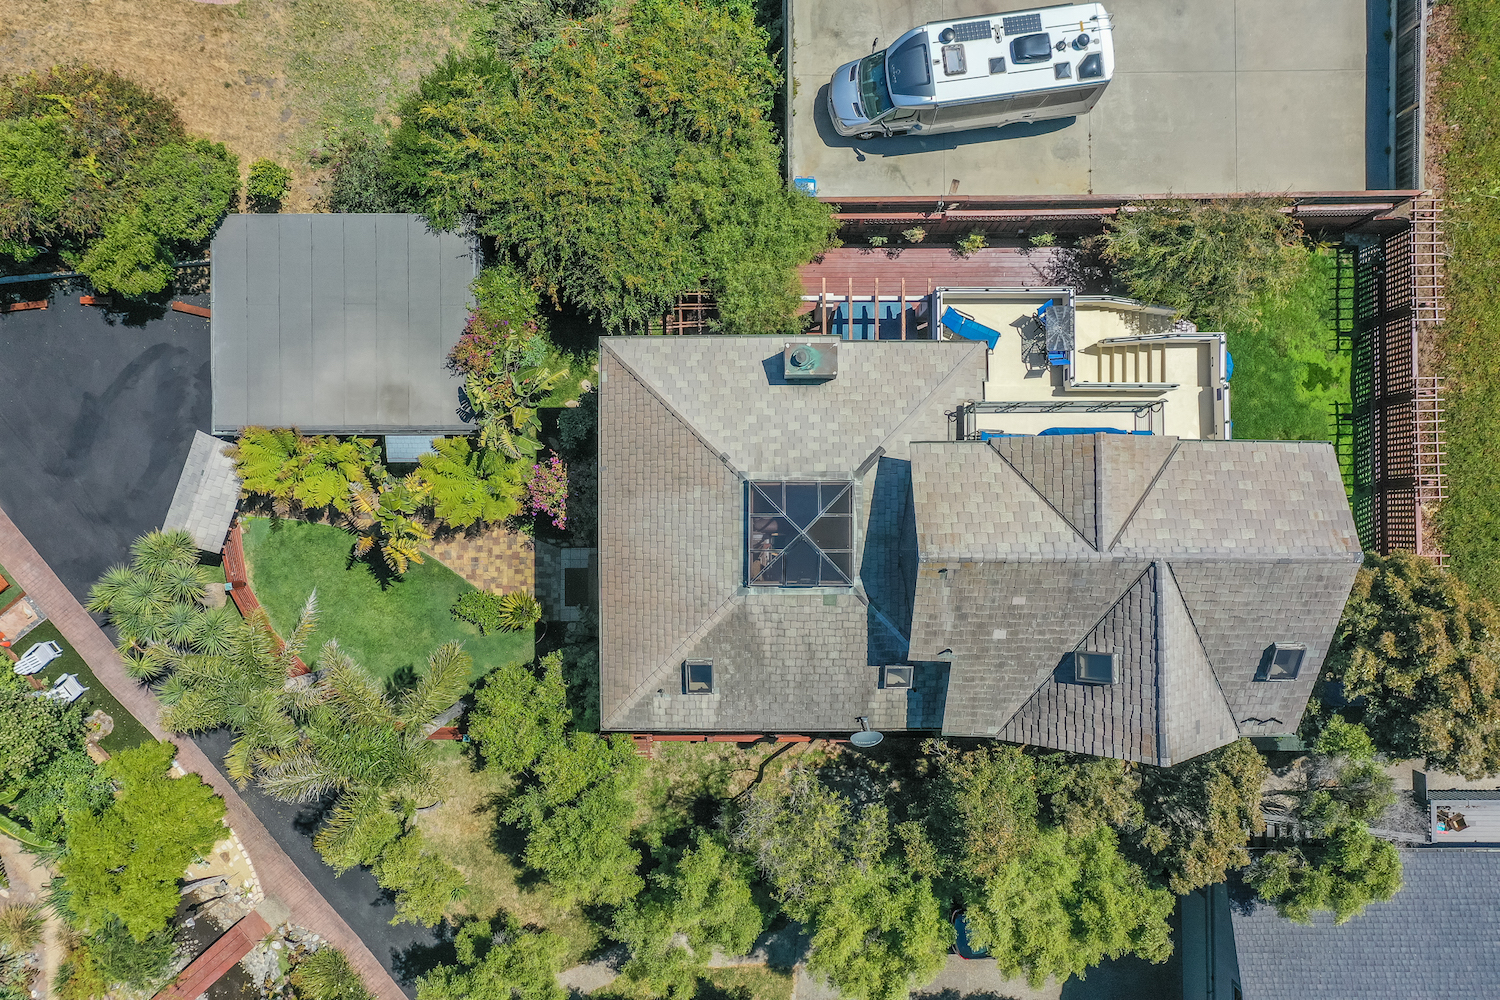 127 bethany curve - top view of house